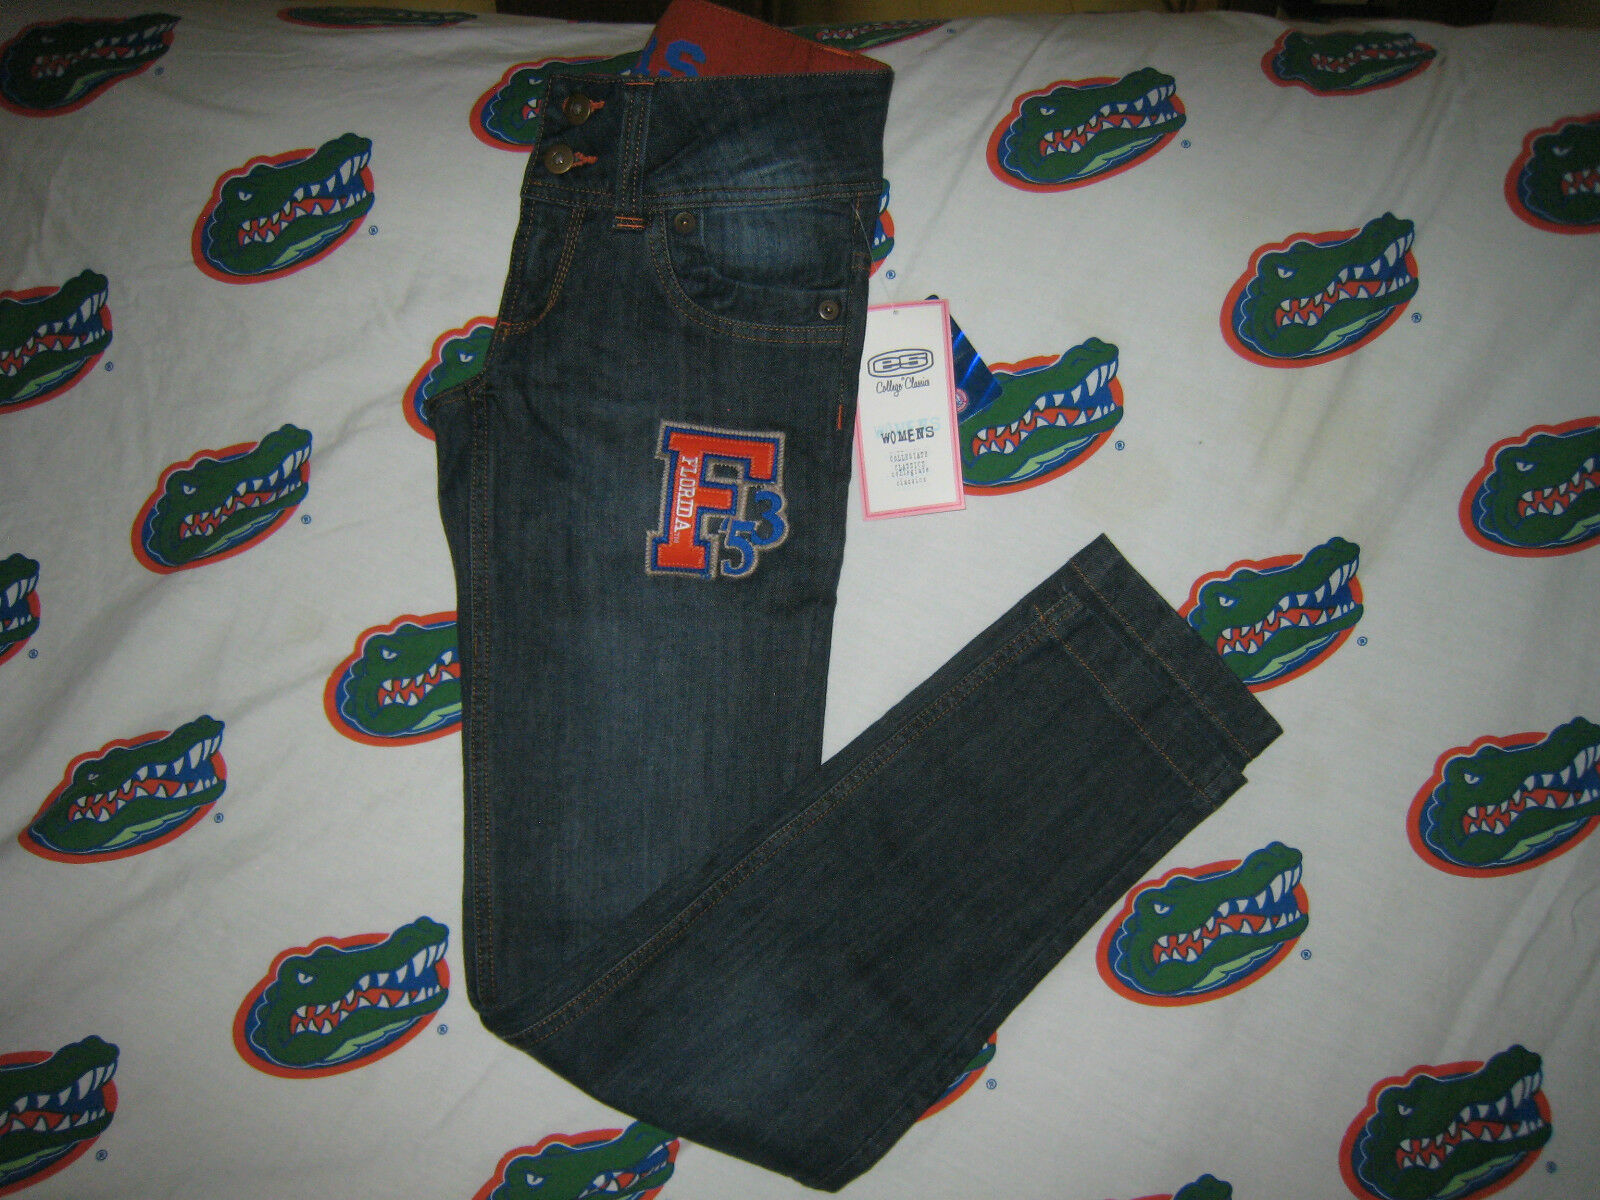 NEW e5 FLORIDA GATORS JEANS SZ 7 GREAT FOR GAMES  MUST HAVE SKINNY JEANS